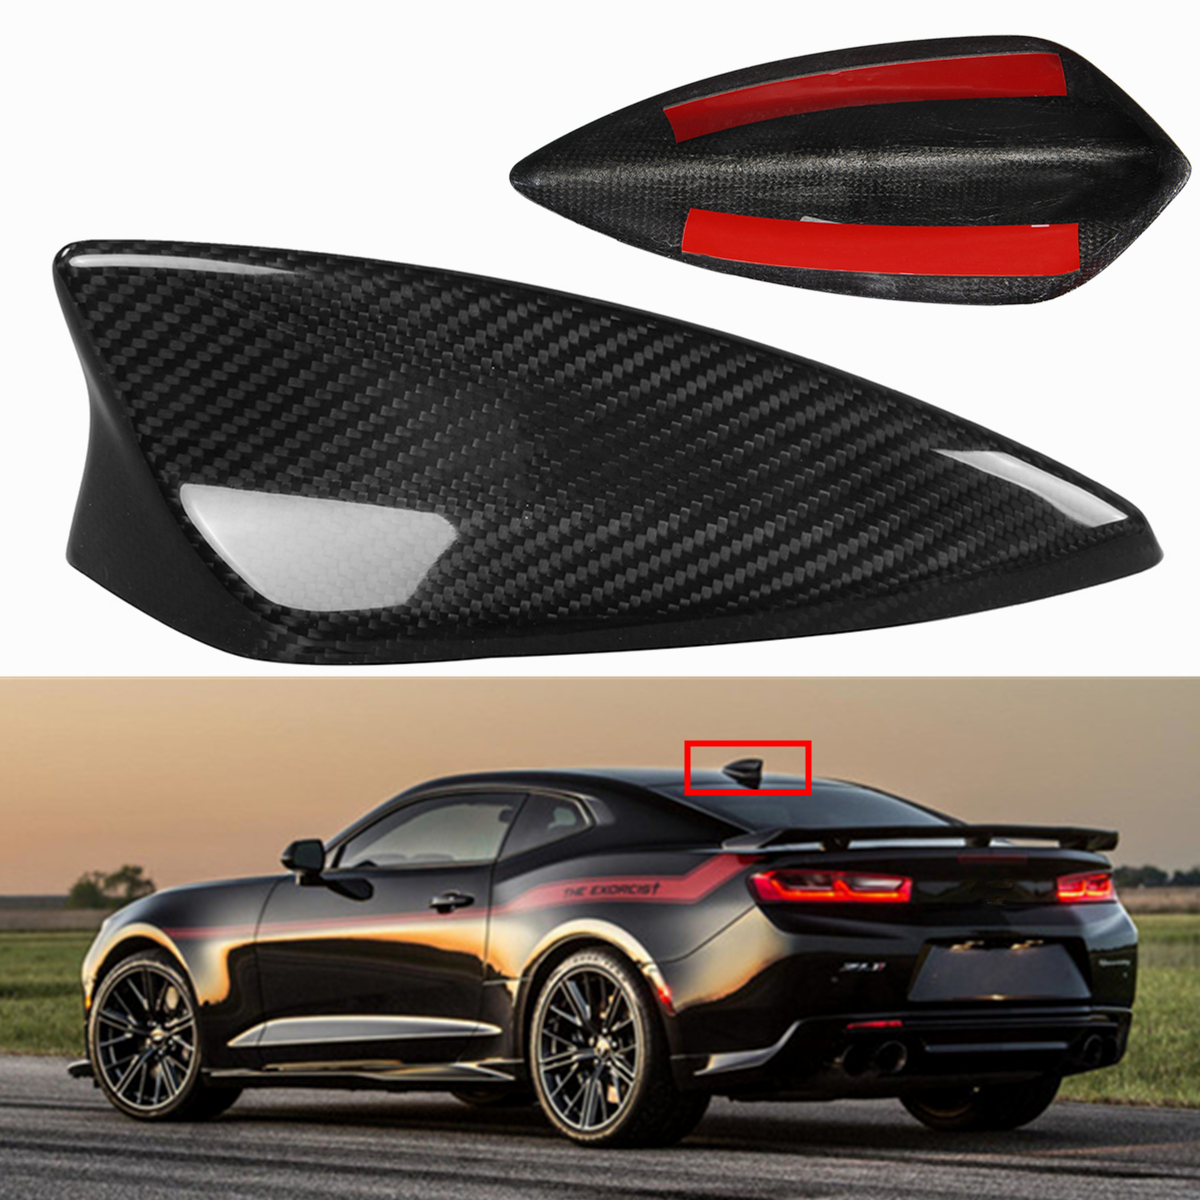 Car Roof Aerials Shark Fin Styling Antenna Cover Radio Trim Carbon Fiber Style ABS Black for Chevrolet Camaro 2017-2018 interior for chevrolet camaro 2016 2017 abs carbon fiber style transmission shift gear panel cover trim 1 piece page 6